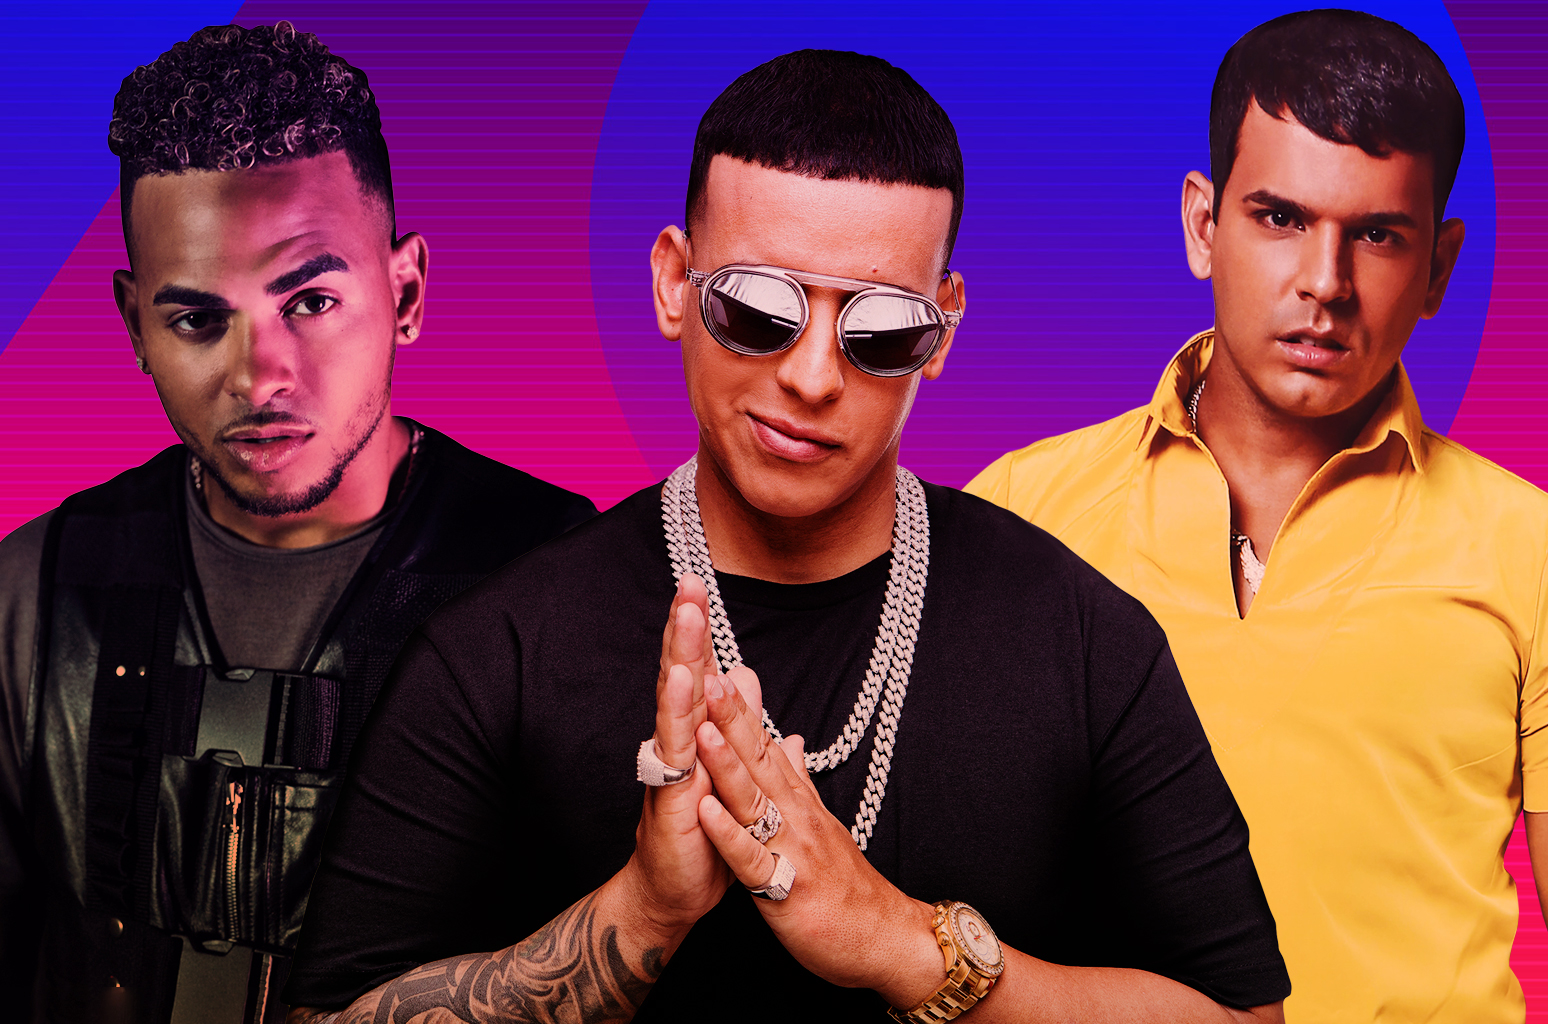 Billboard Latin Music Awards: The Evolution of the Urban Genre